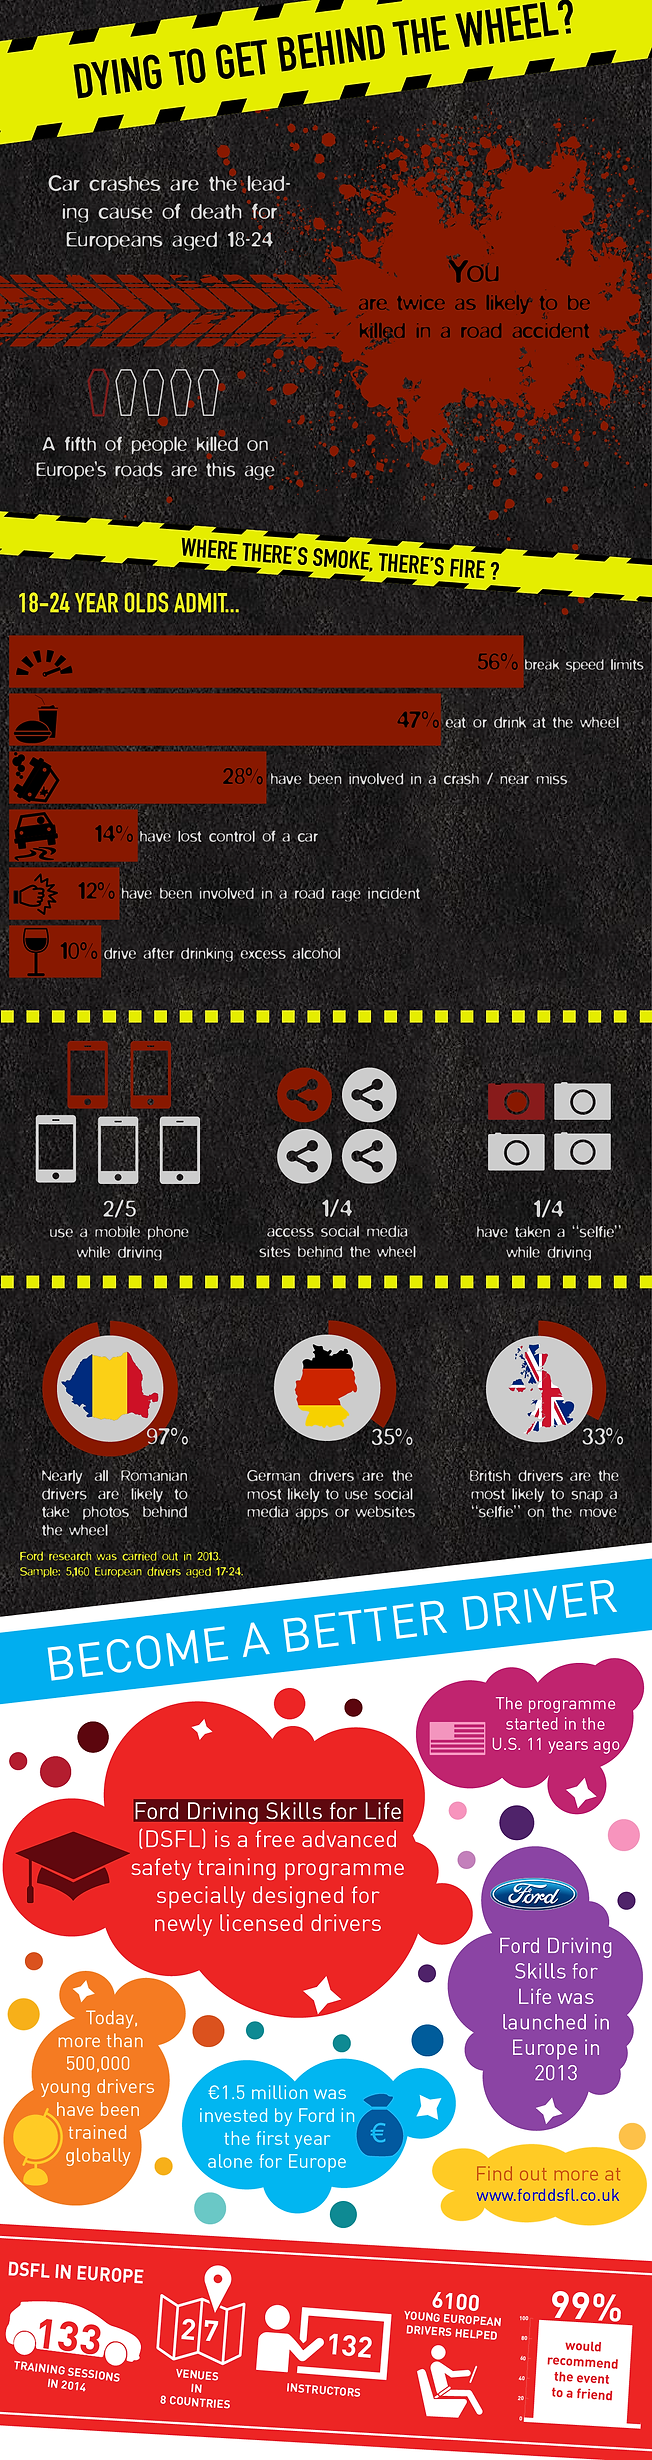 infographic data visualisation ford survey young people dying road wheel